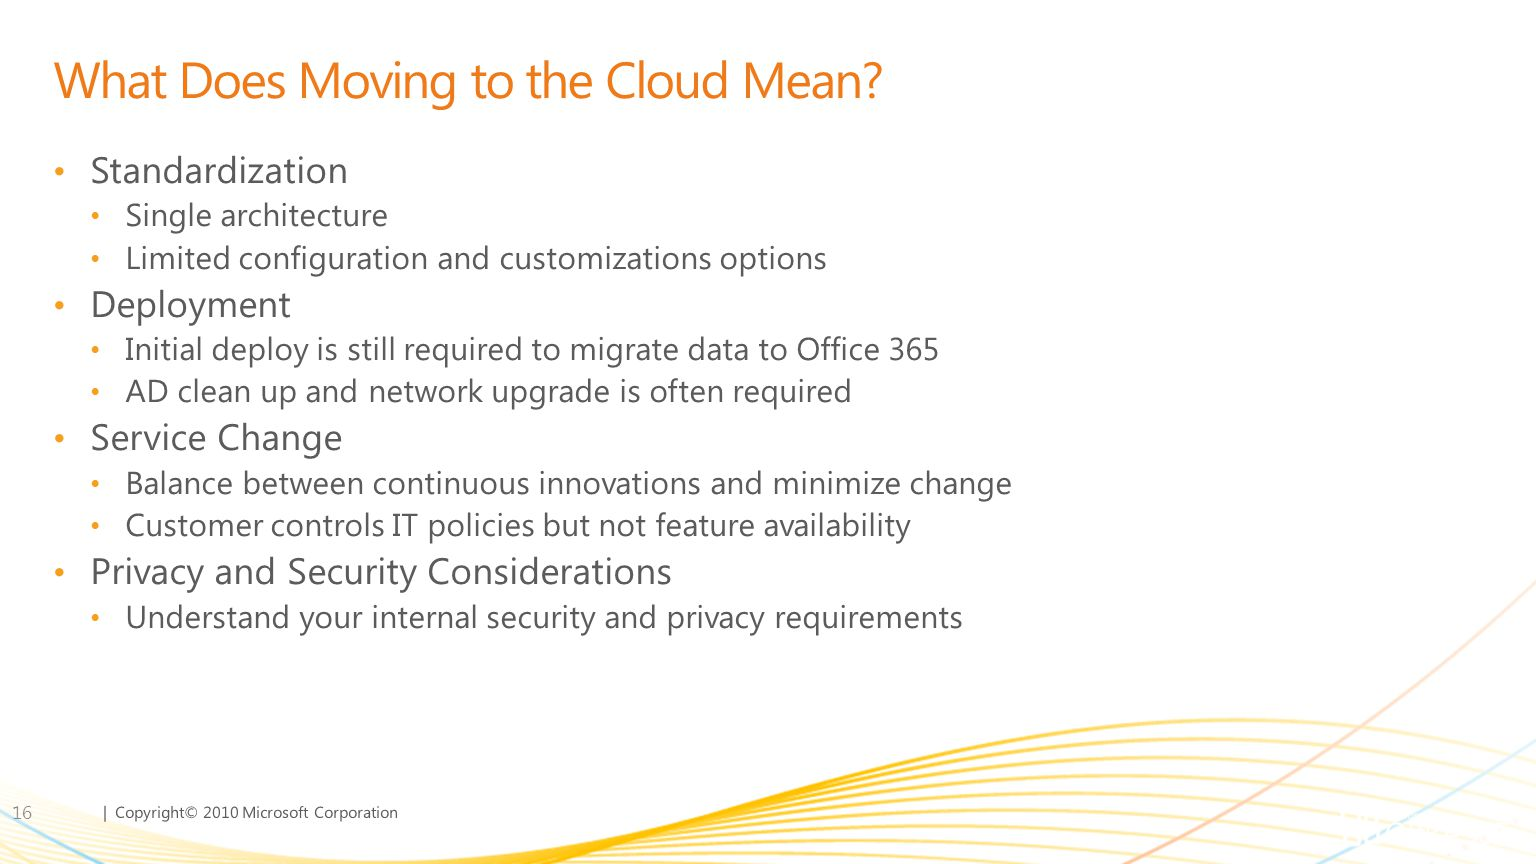 What Does Moving to the Cloud Mean